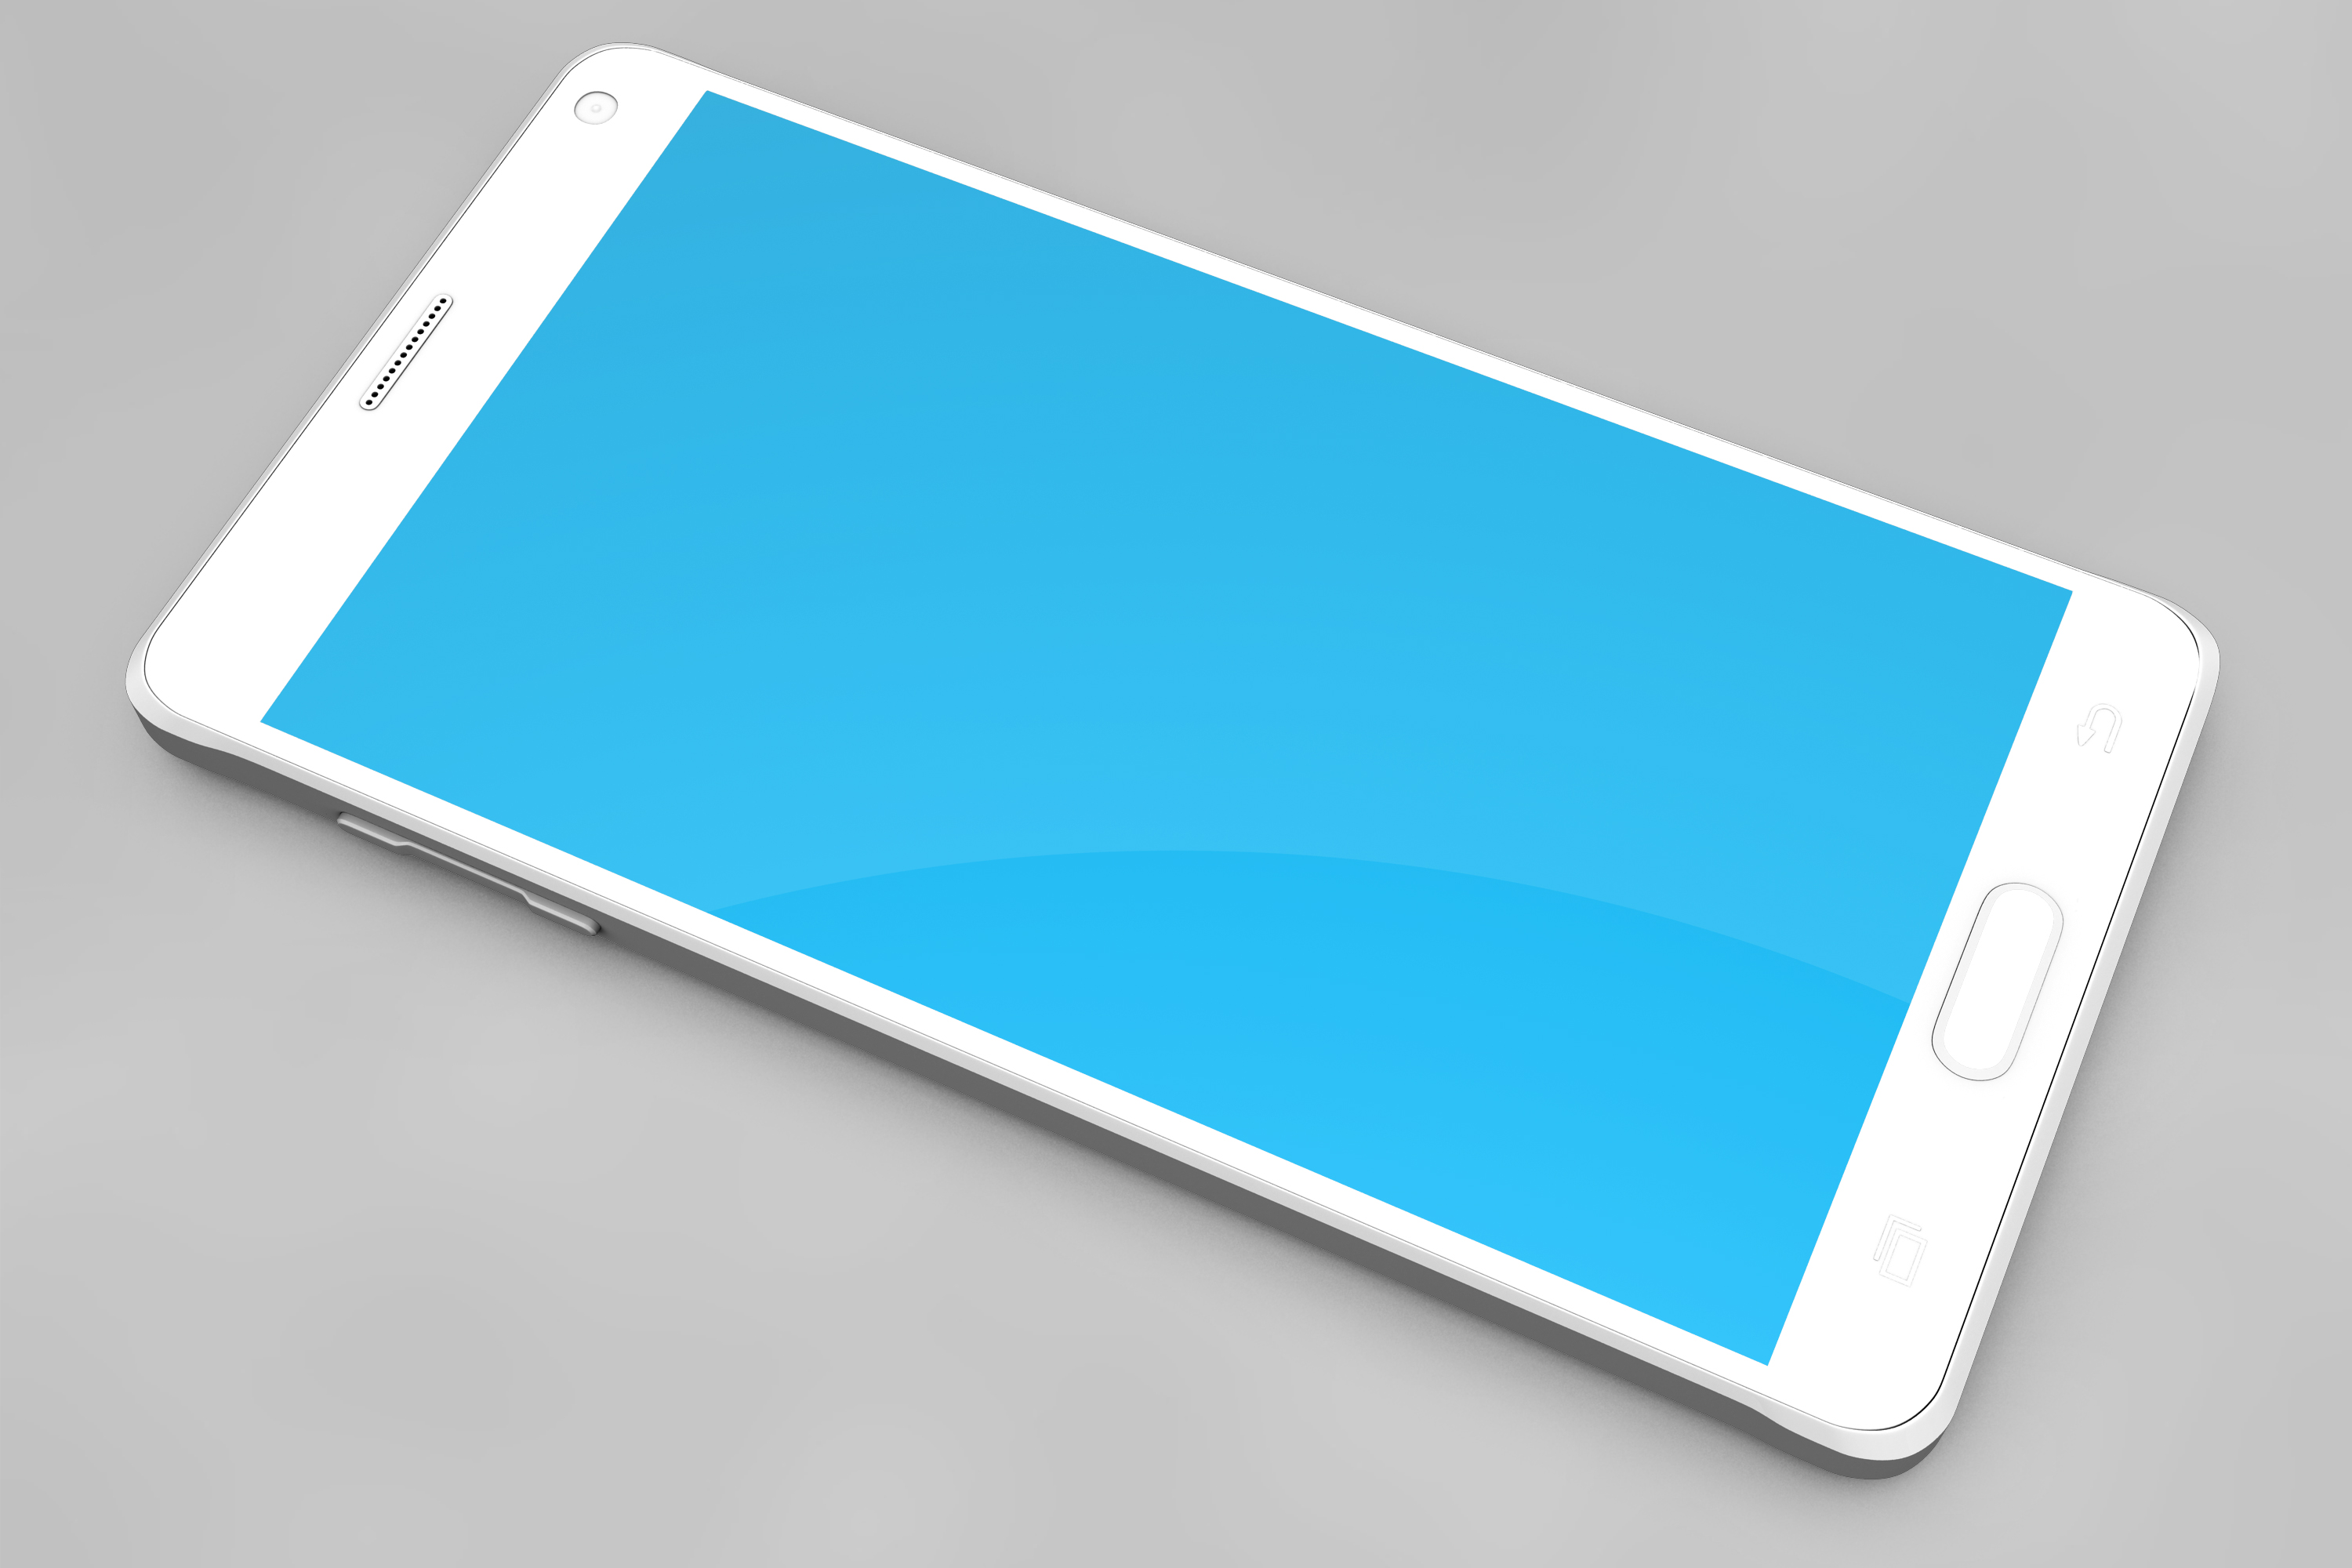 Samsung Galaxy Note 4 Mock-up example image 8